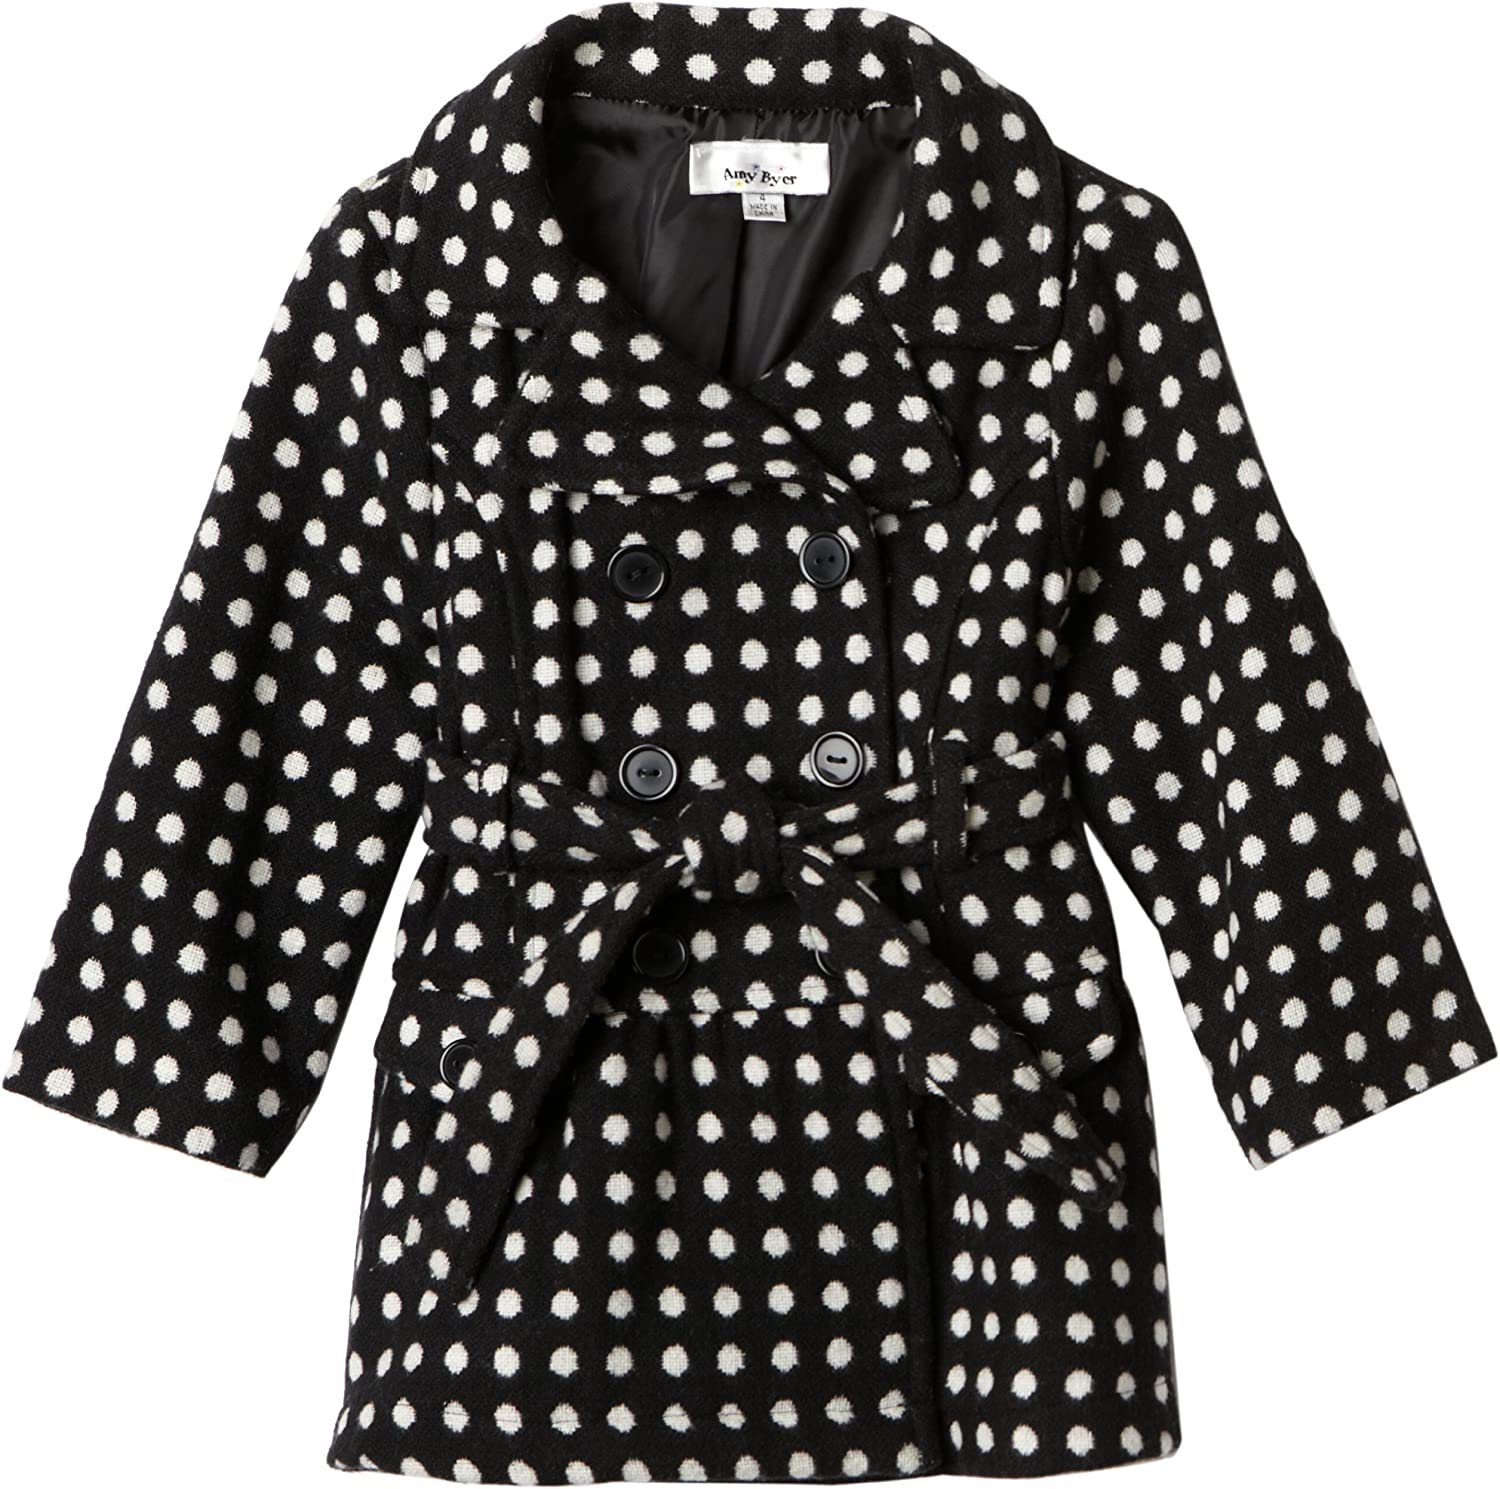 Amy Byer Little Girls' Dot To Dot Double Breasted Fabulous Fashion Cozy Trench Coat